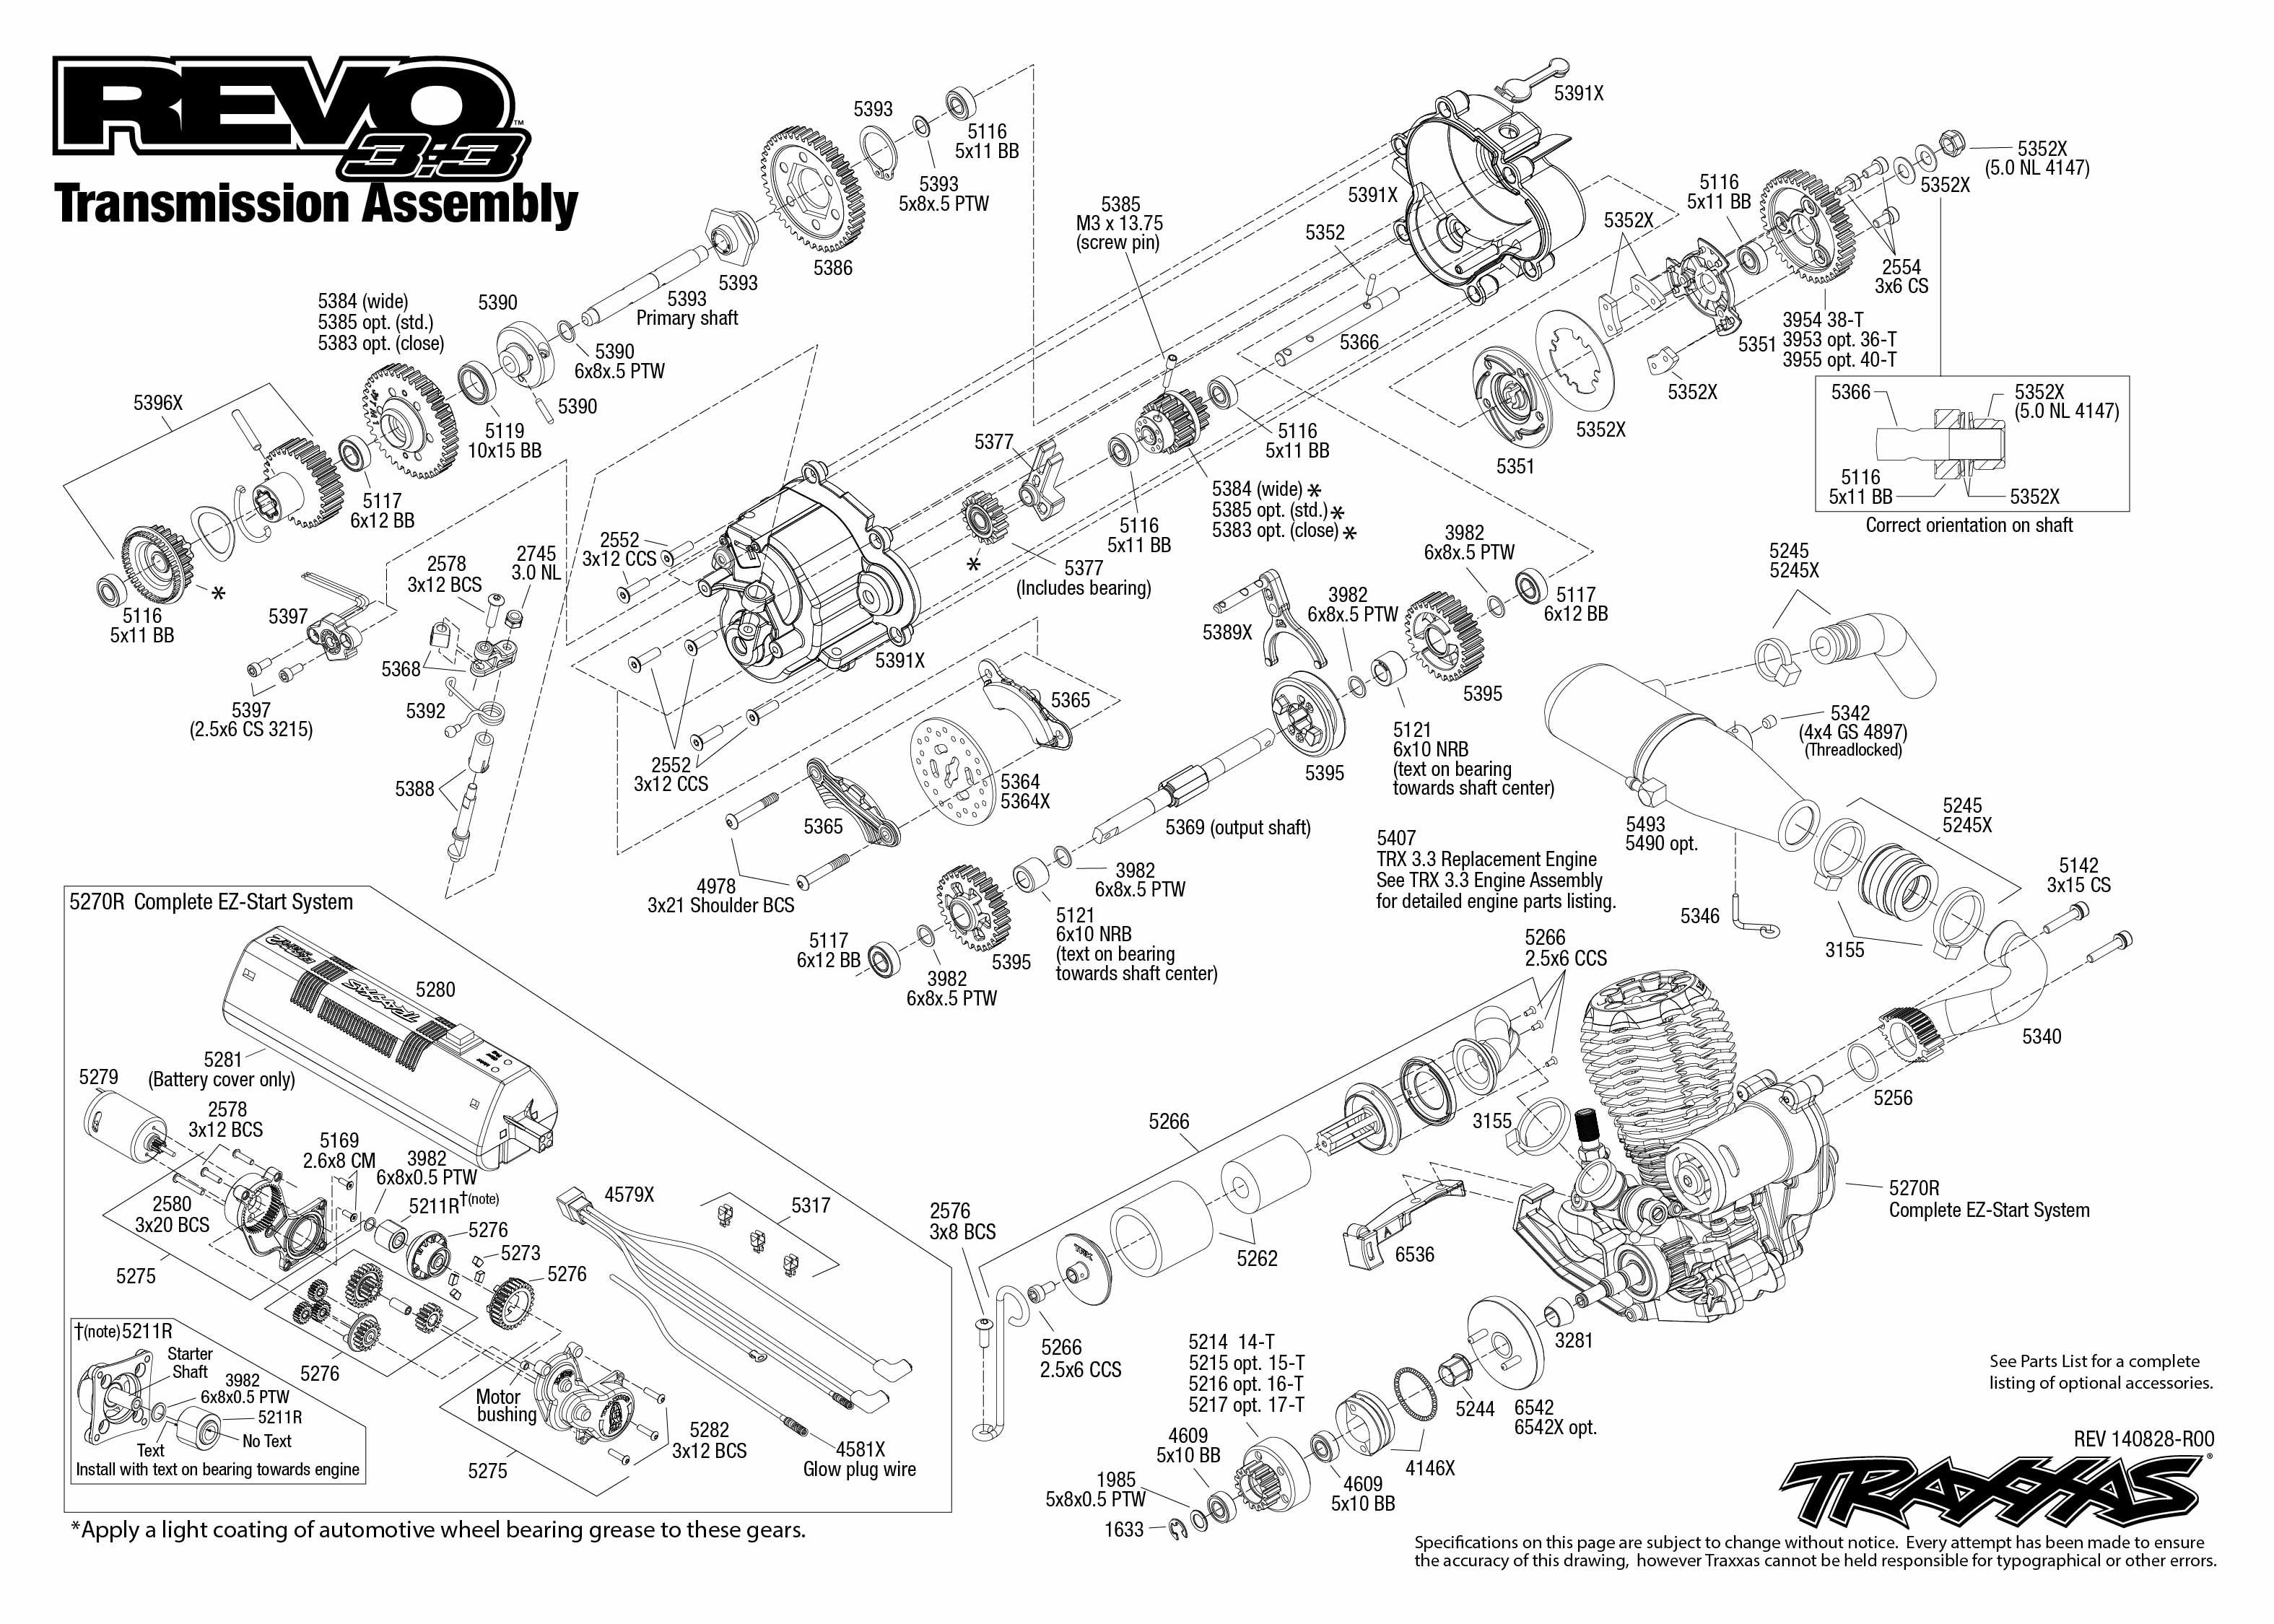 [SCHEMATICS_48EU]  Revo 3.3 (53097-1) Transmission Assembly Exploded View | Traxxas | Traxxas 2 5 Engine Diagram |  | Traxxas